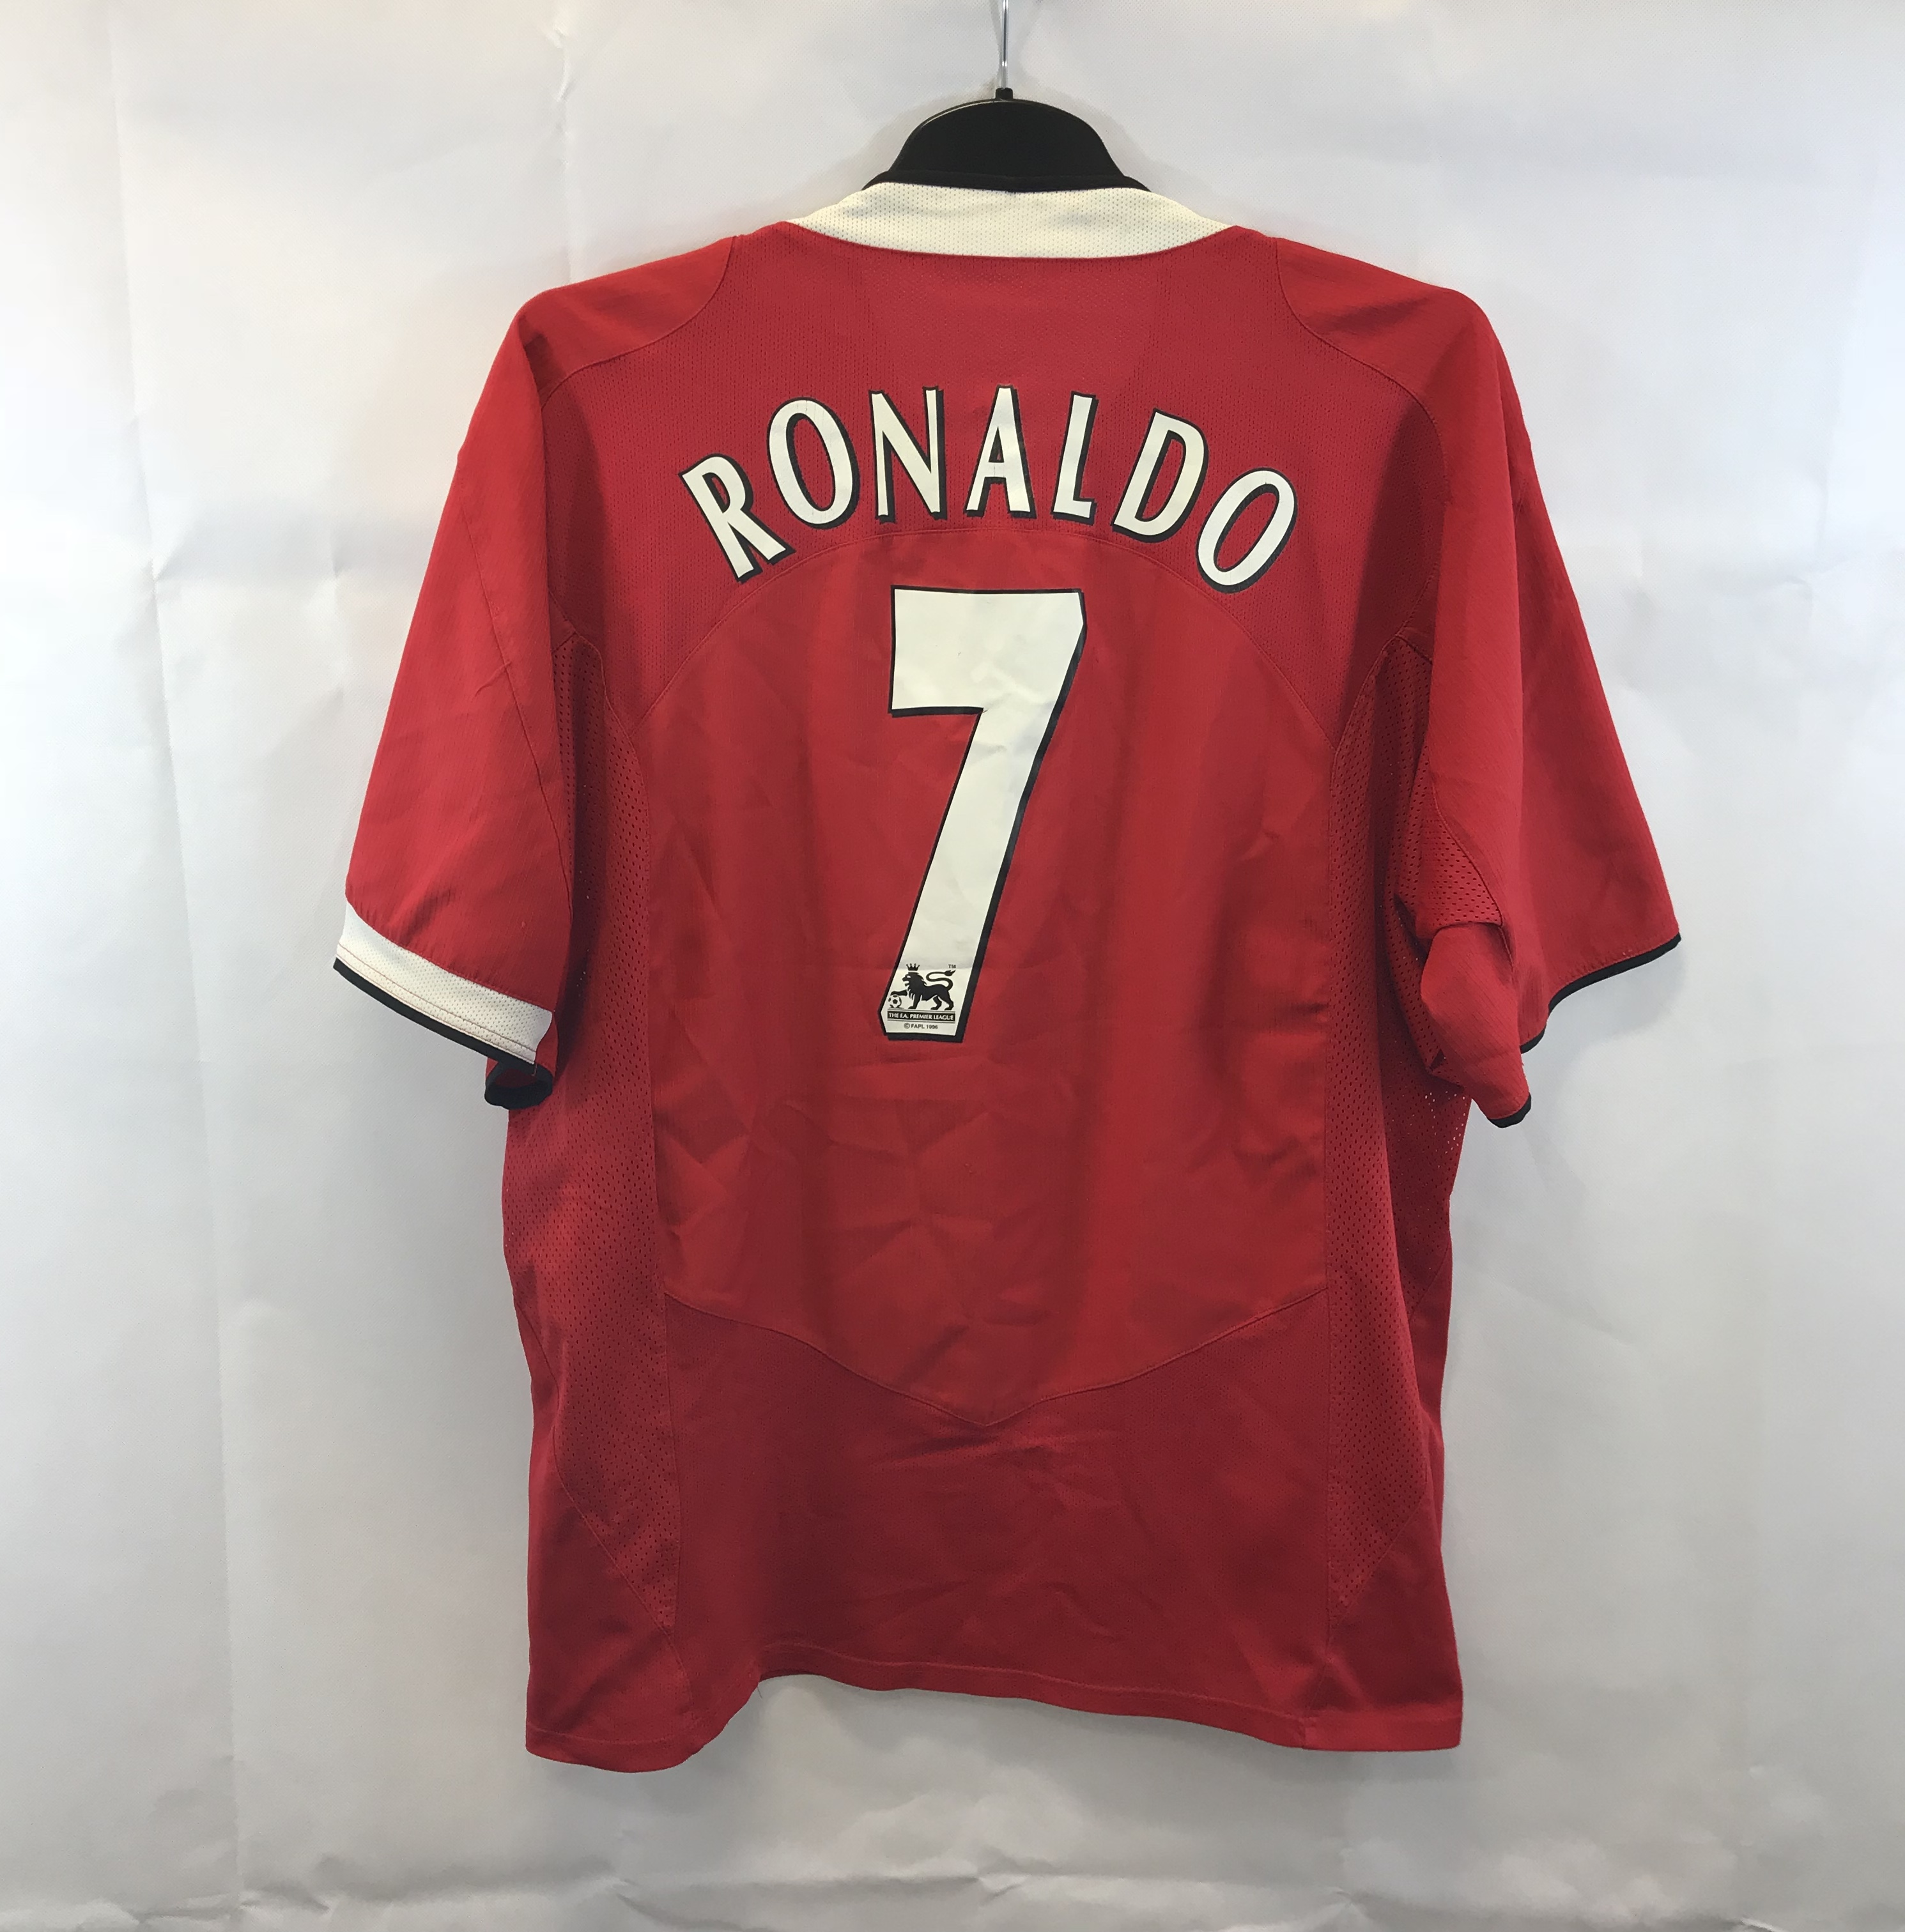 new products 5da9d 36ba8 Manchester United Ronaldo 7 Home Football Shirt 2004/06 Adults XL Nike